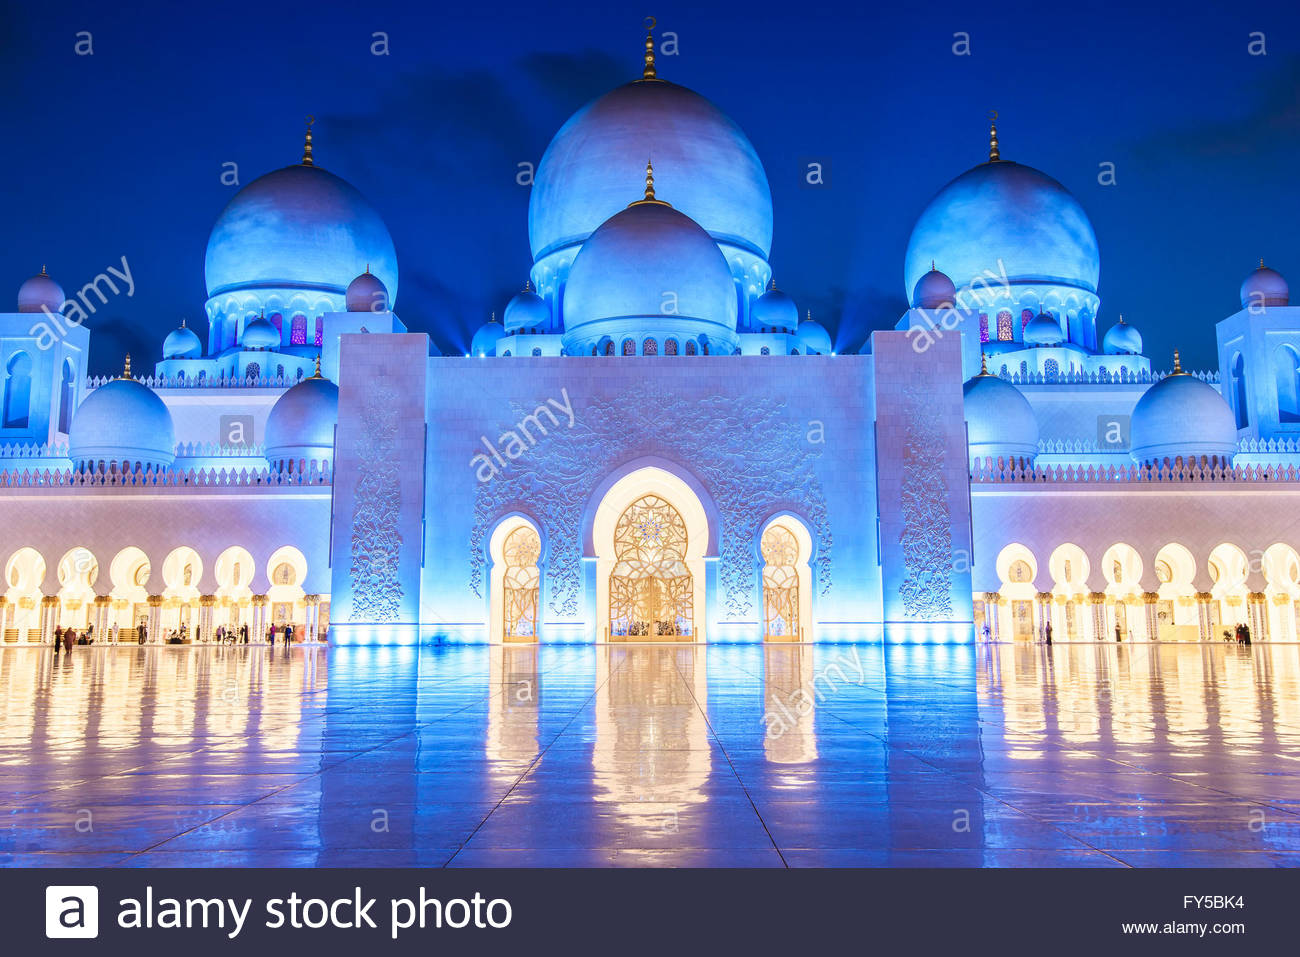 Abu Dhabi hosts the third largest mosque in the world - after the ones in Mecca and Madina in Saudi Arabia. It is Stock Photo